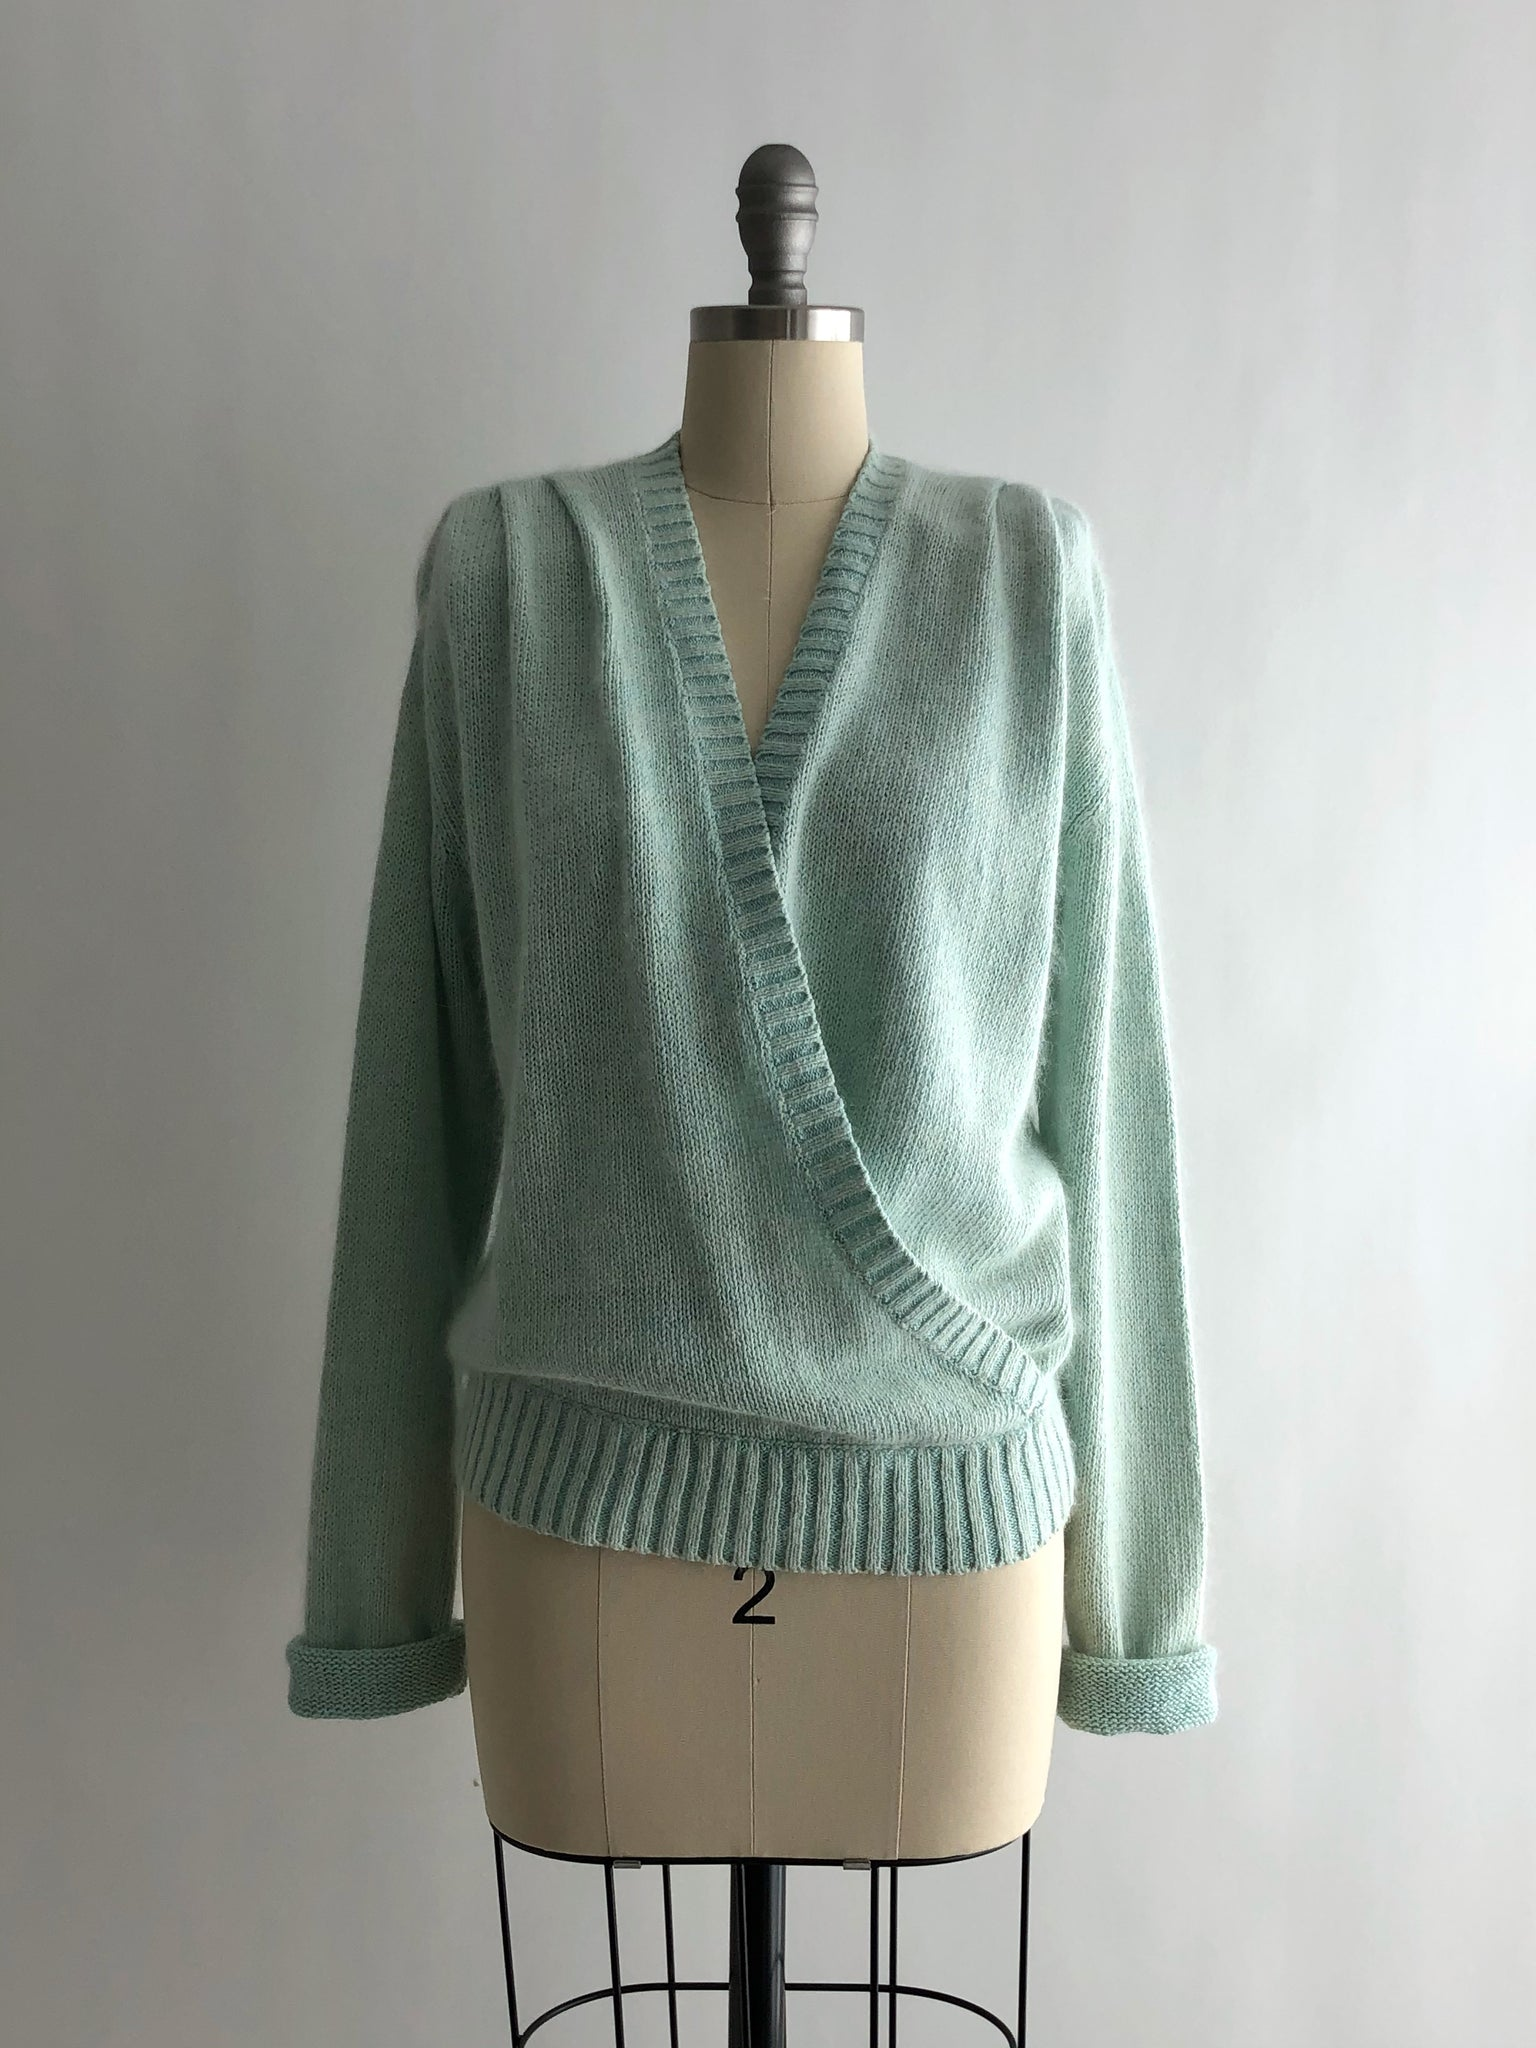 Vintage 80s Fuzzy Teal Wrap Style Silk Sweater by Lindsay Blair